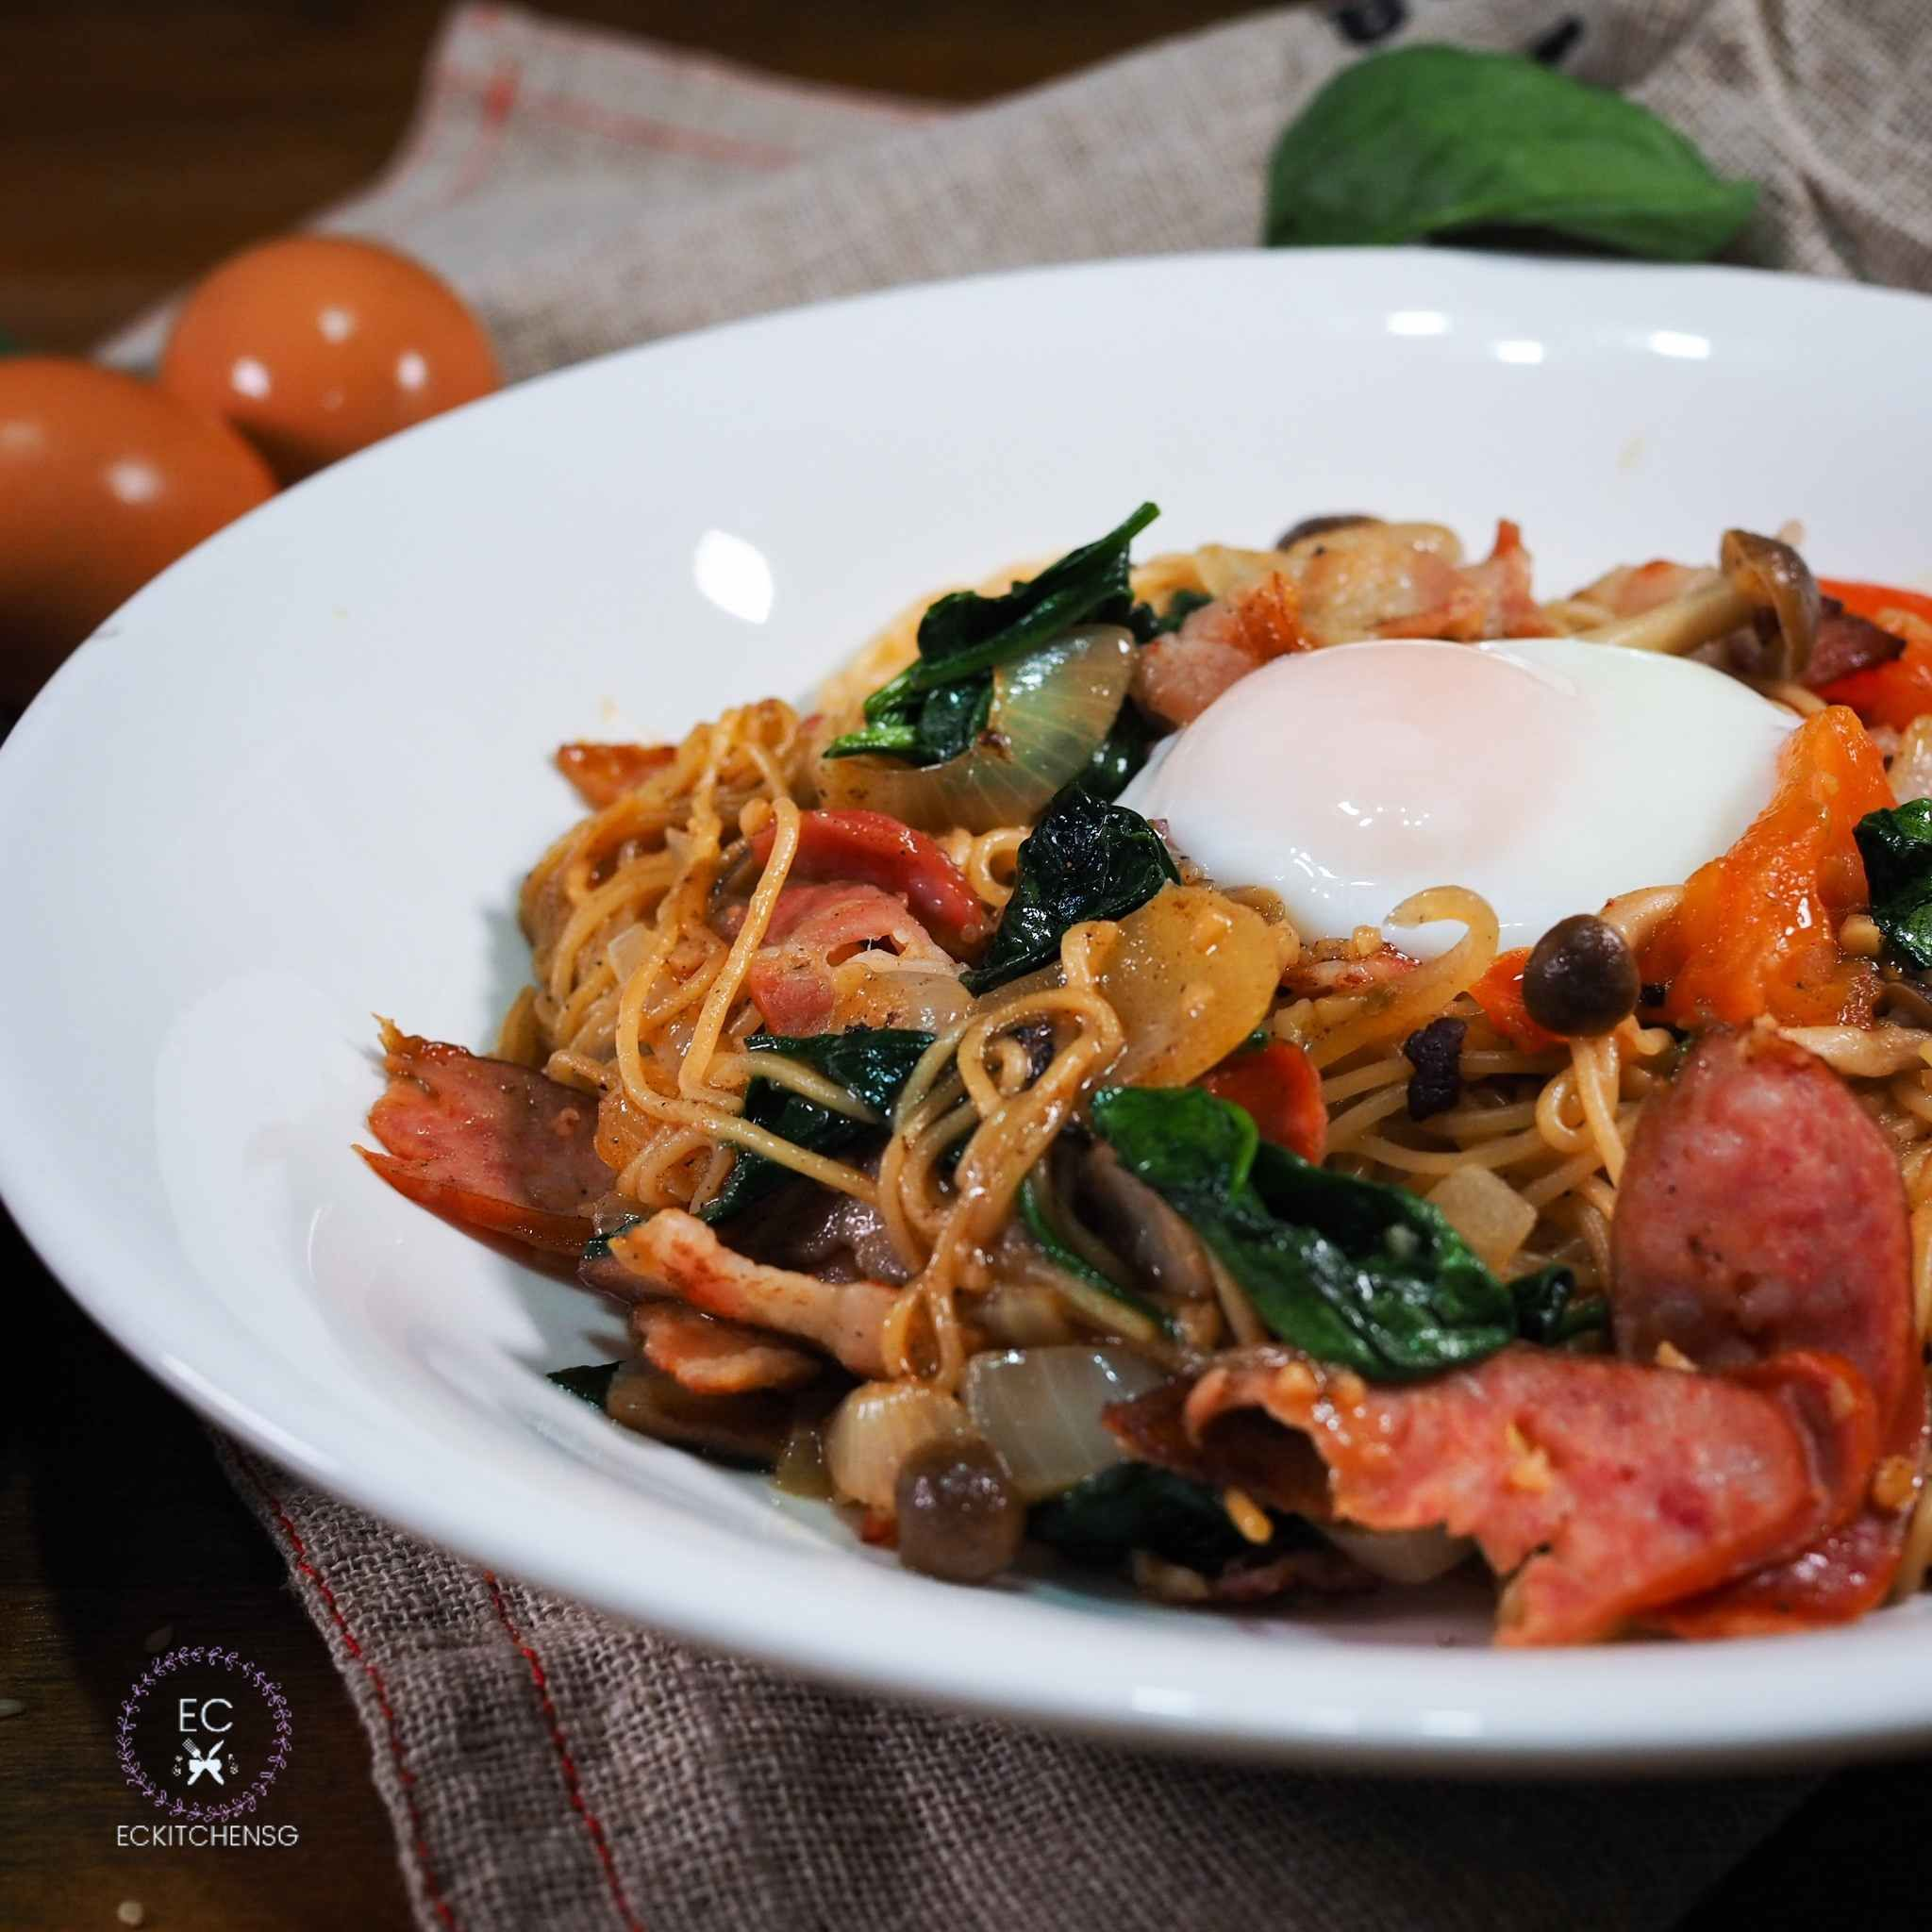 Japanese Style Spaghetti Inspired By Miam Miam Eckitchensg Vegetable Recipes Cooking Recipes Fusion Food